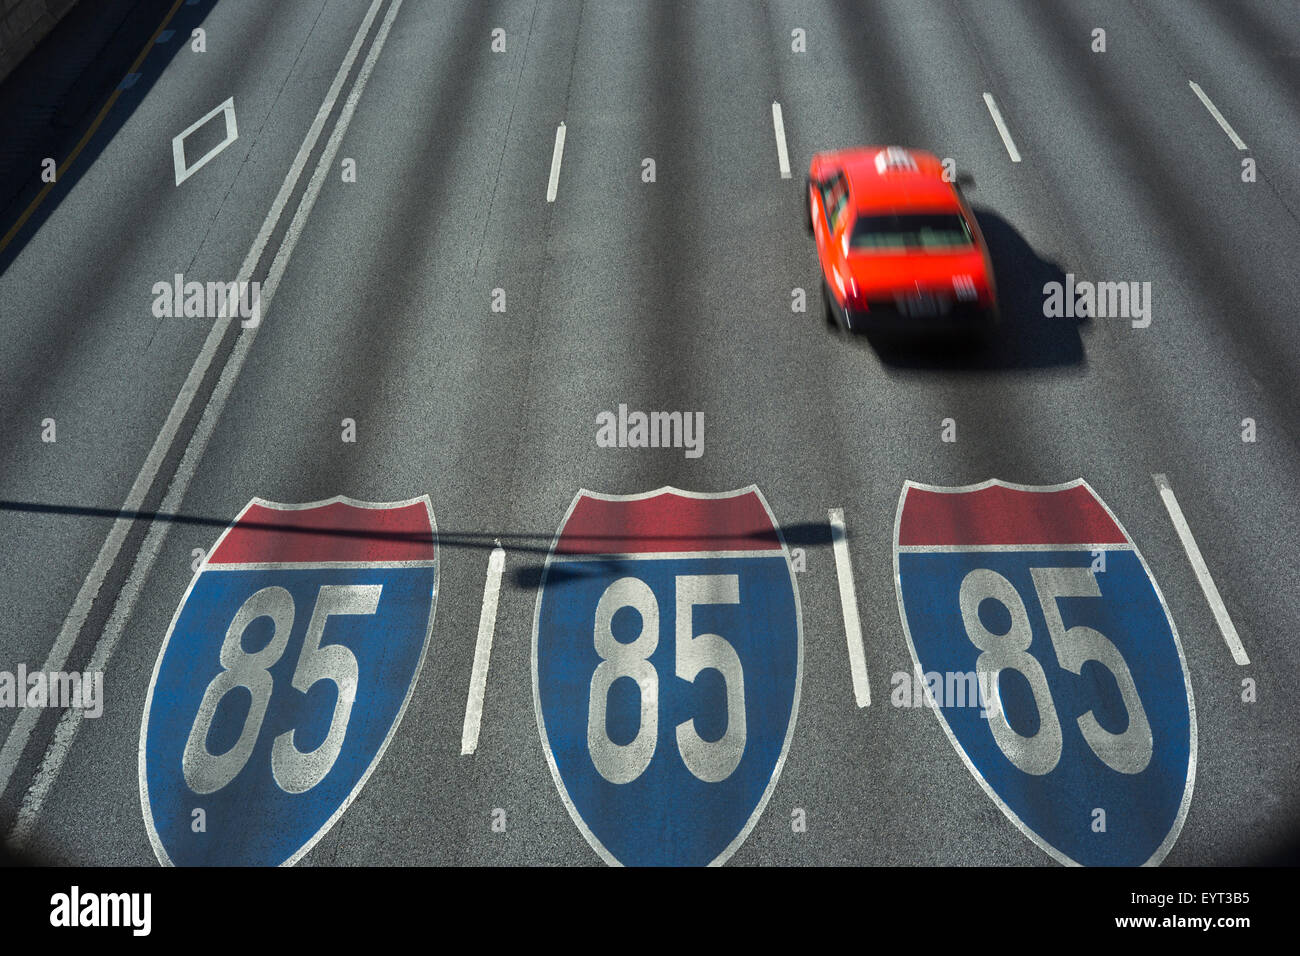 I-75/I-85 INTERSTATE CONNECTOR ATLANTA GEORGIA USA - Stock Image